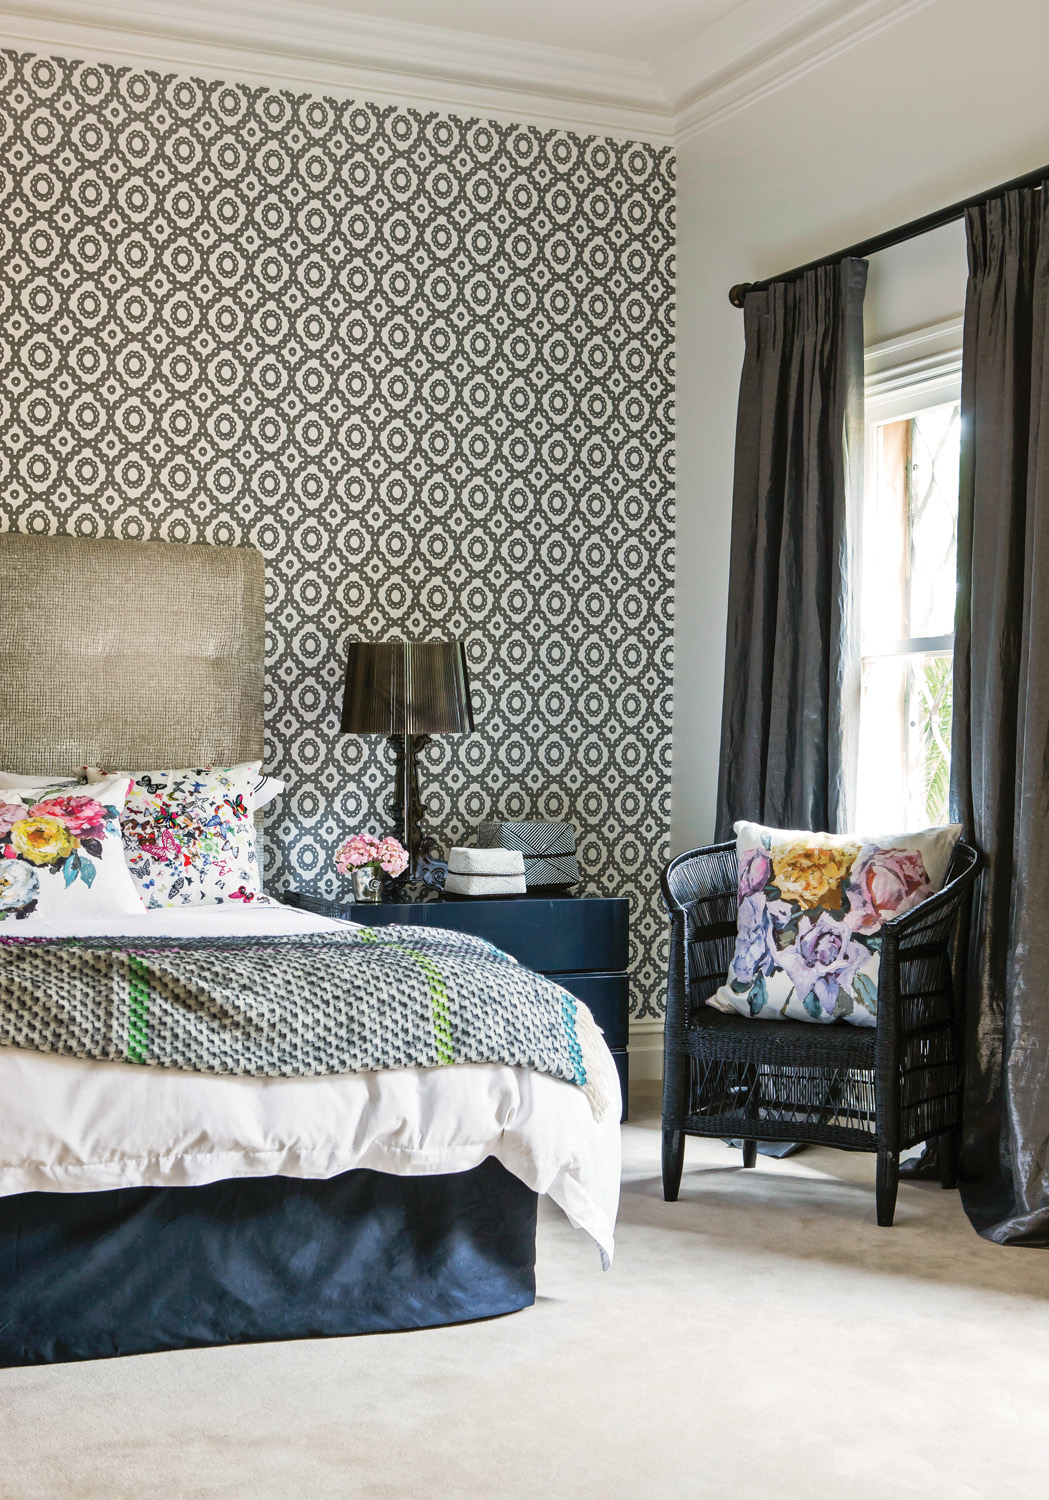 Floral cushions add a touch of femininity to the space